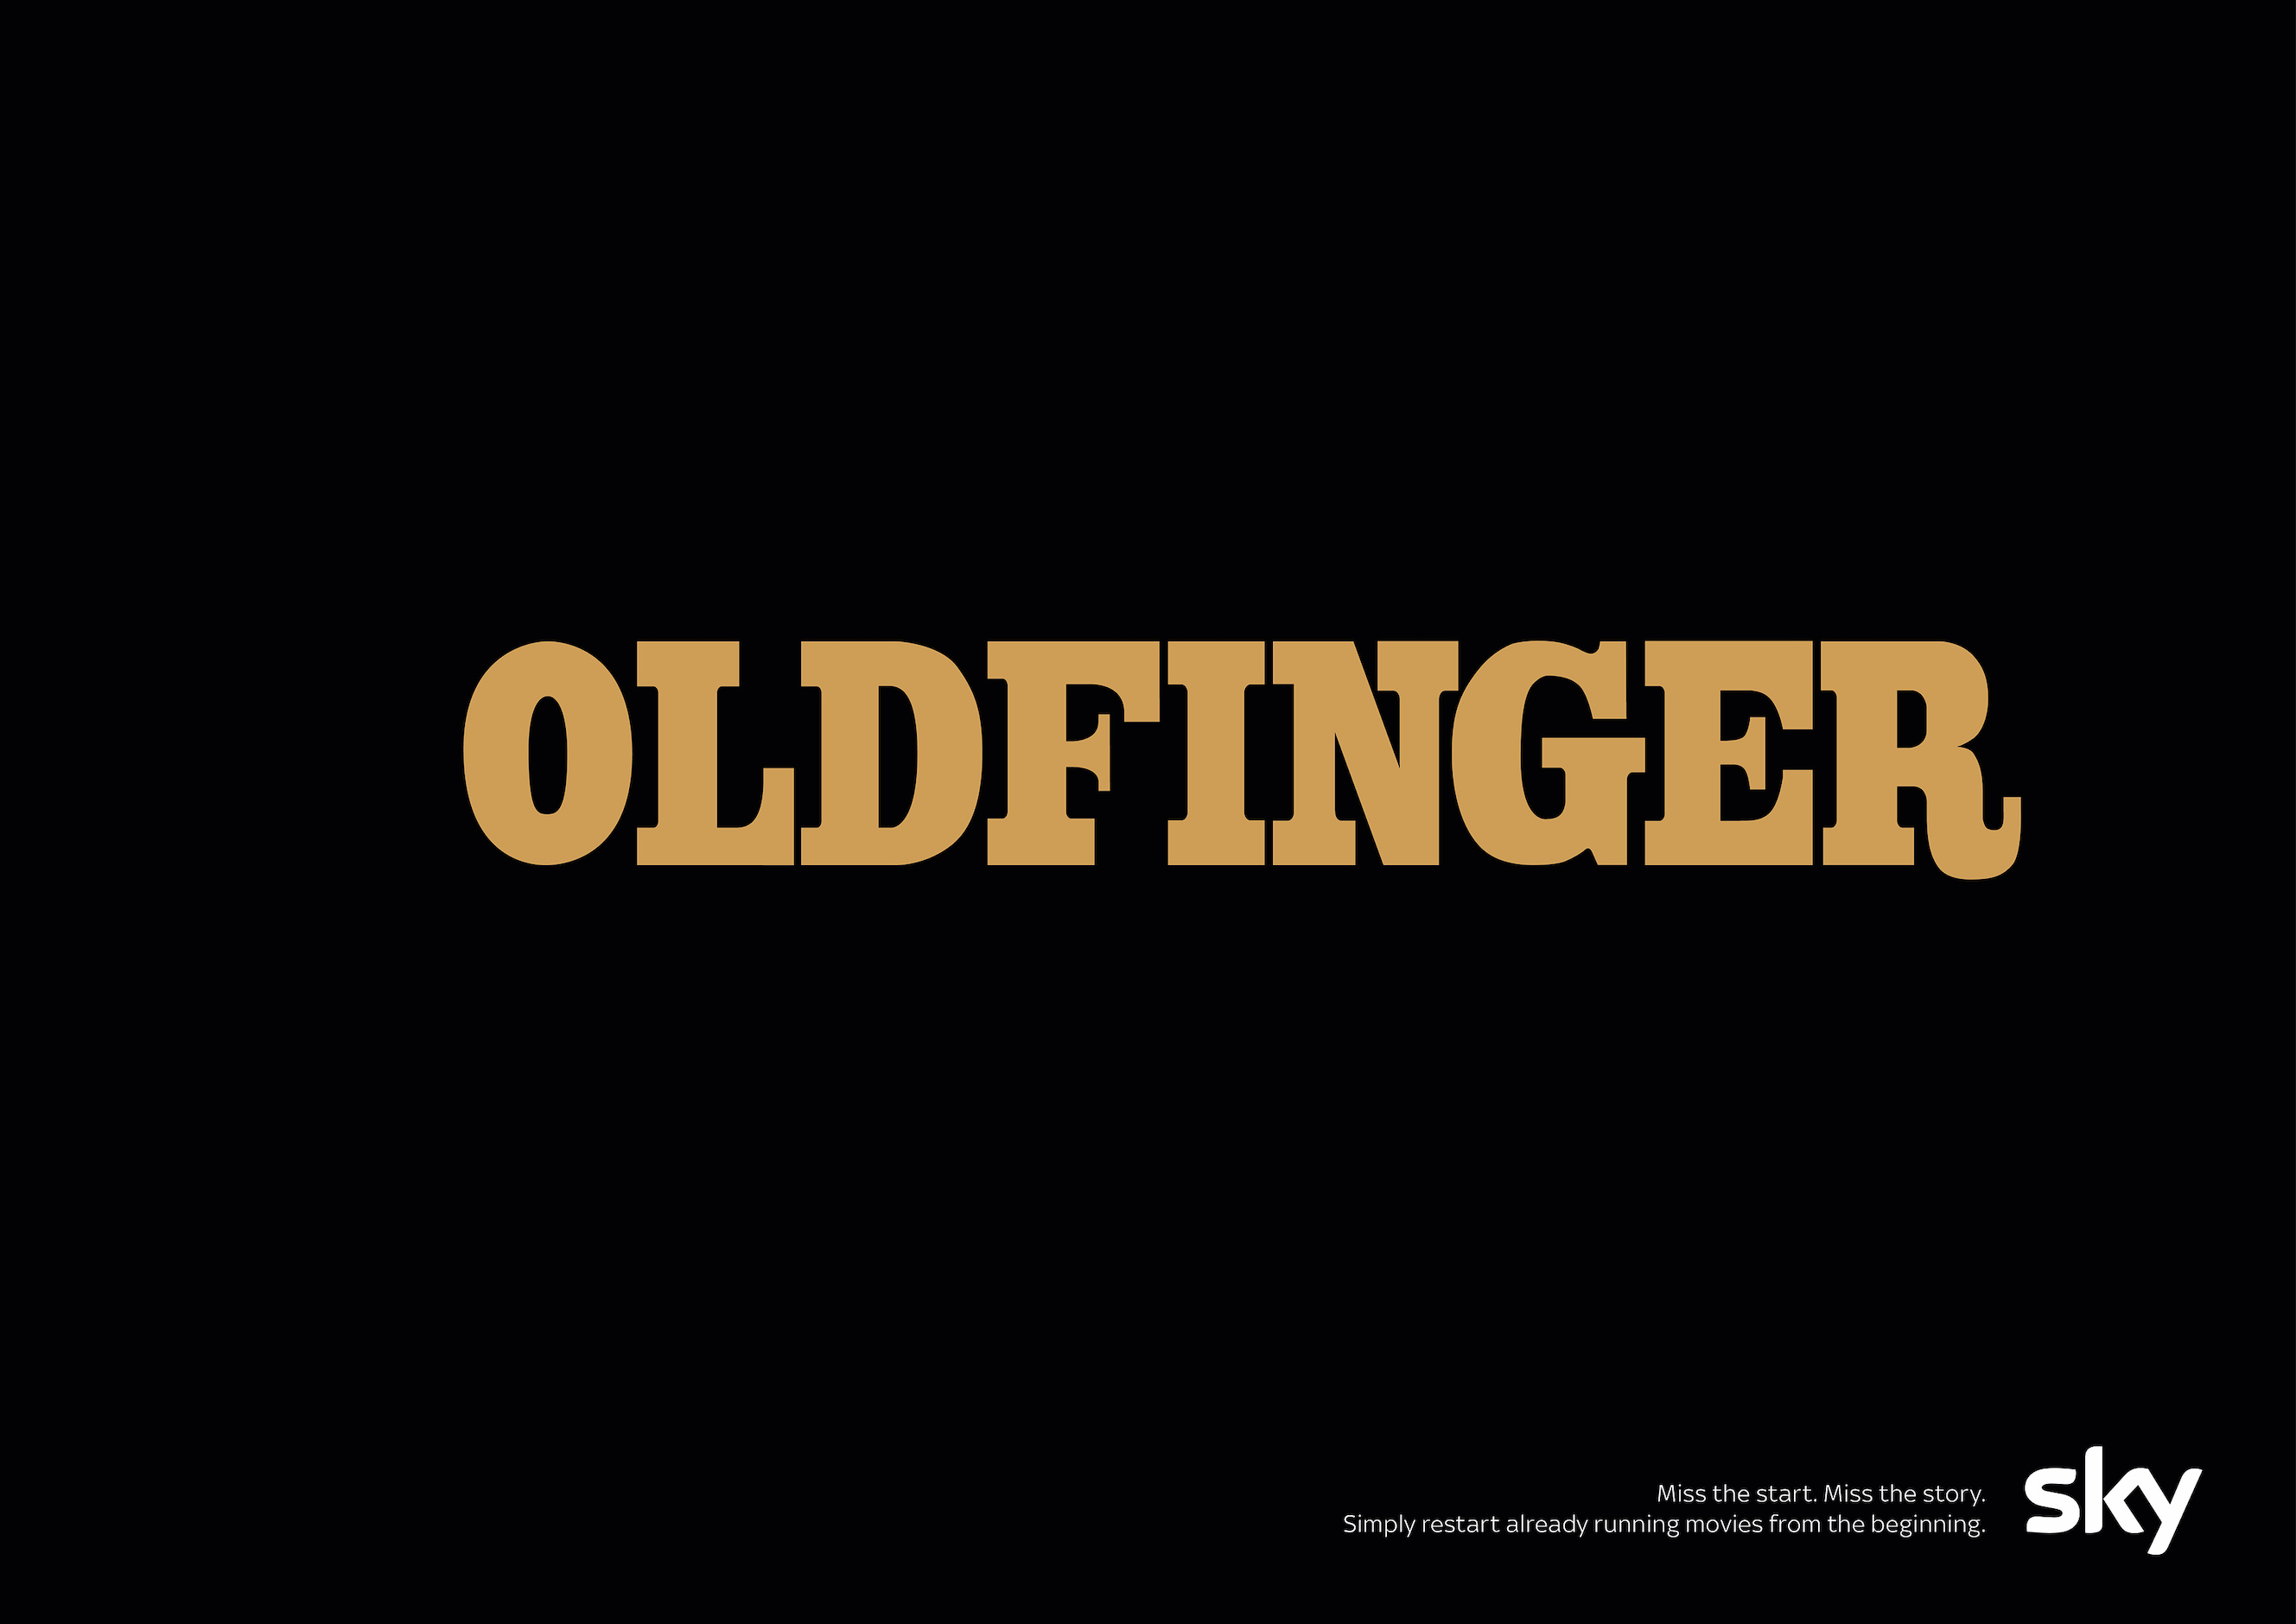 Miss the start. Miss the story - Sky (Goldfinger)